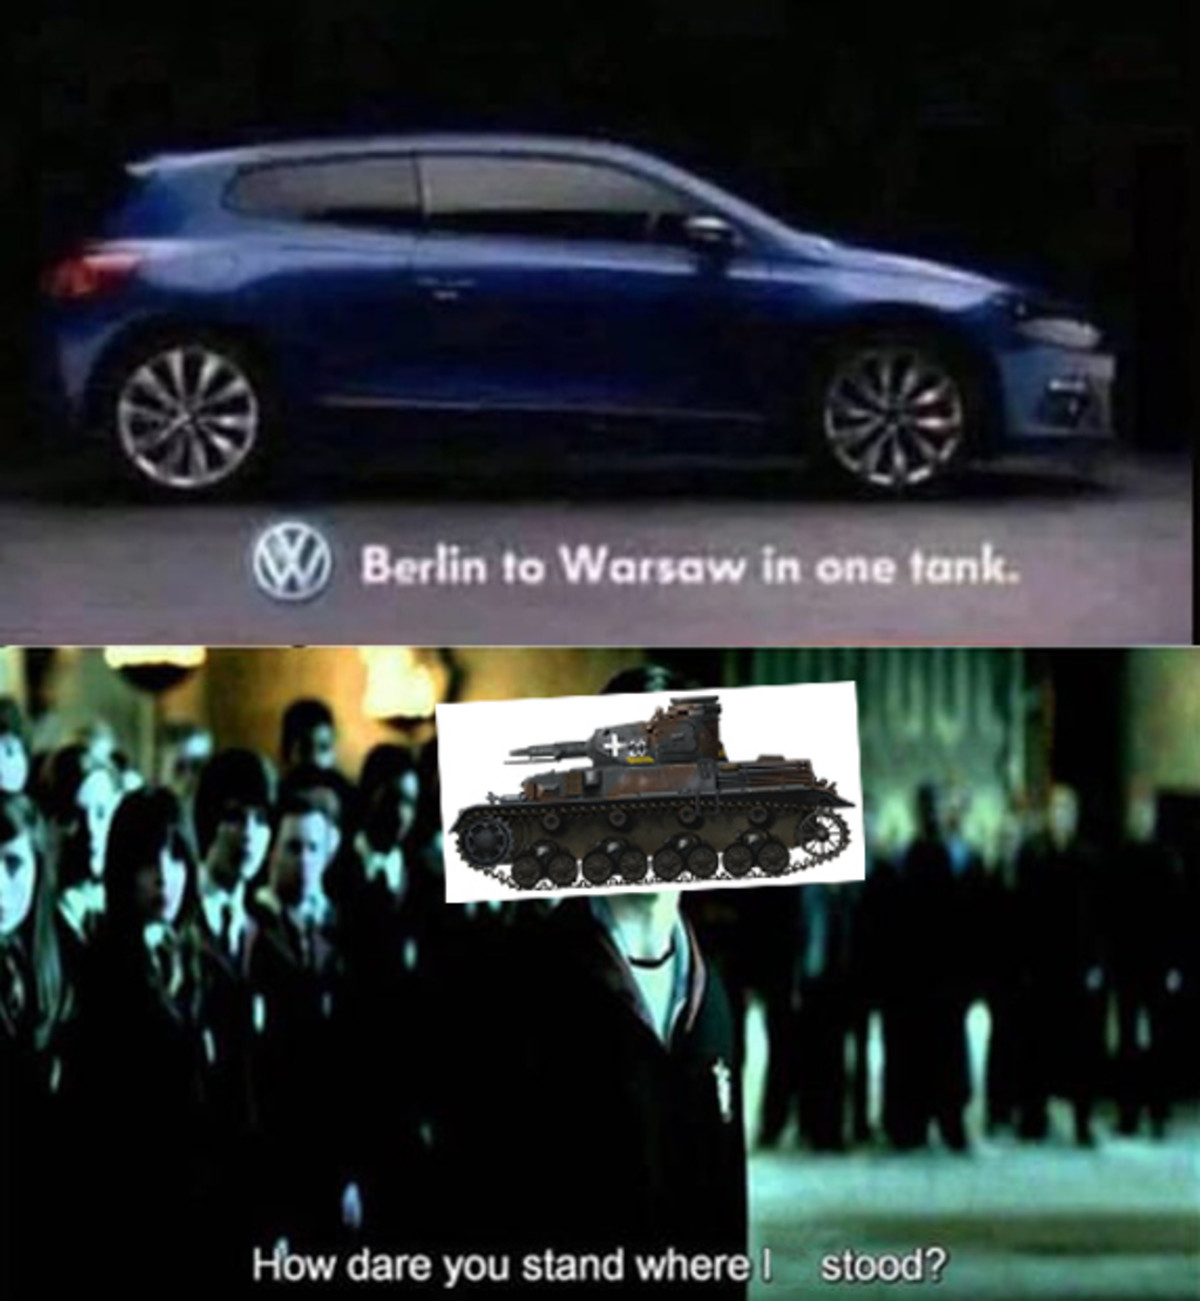 cries in Wehrmacht. .. This car will last longer than 3nd reich did lmao